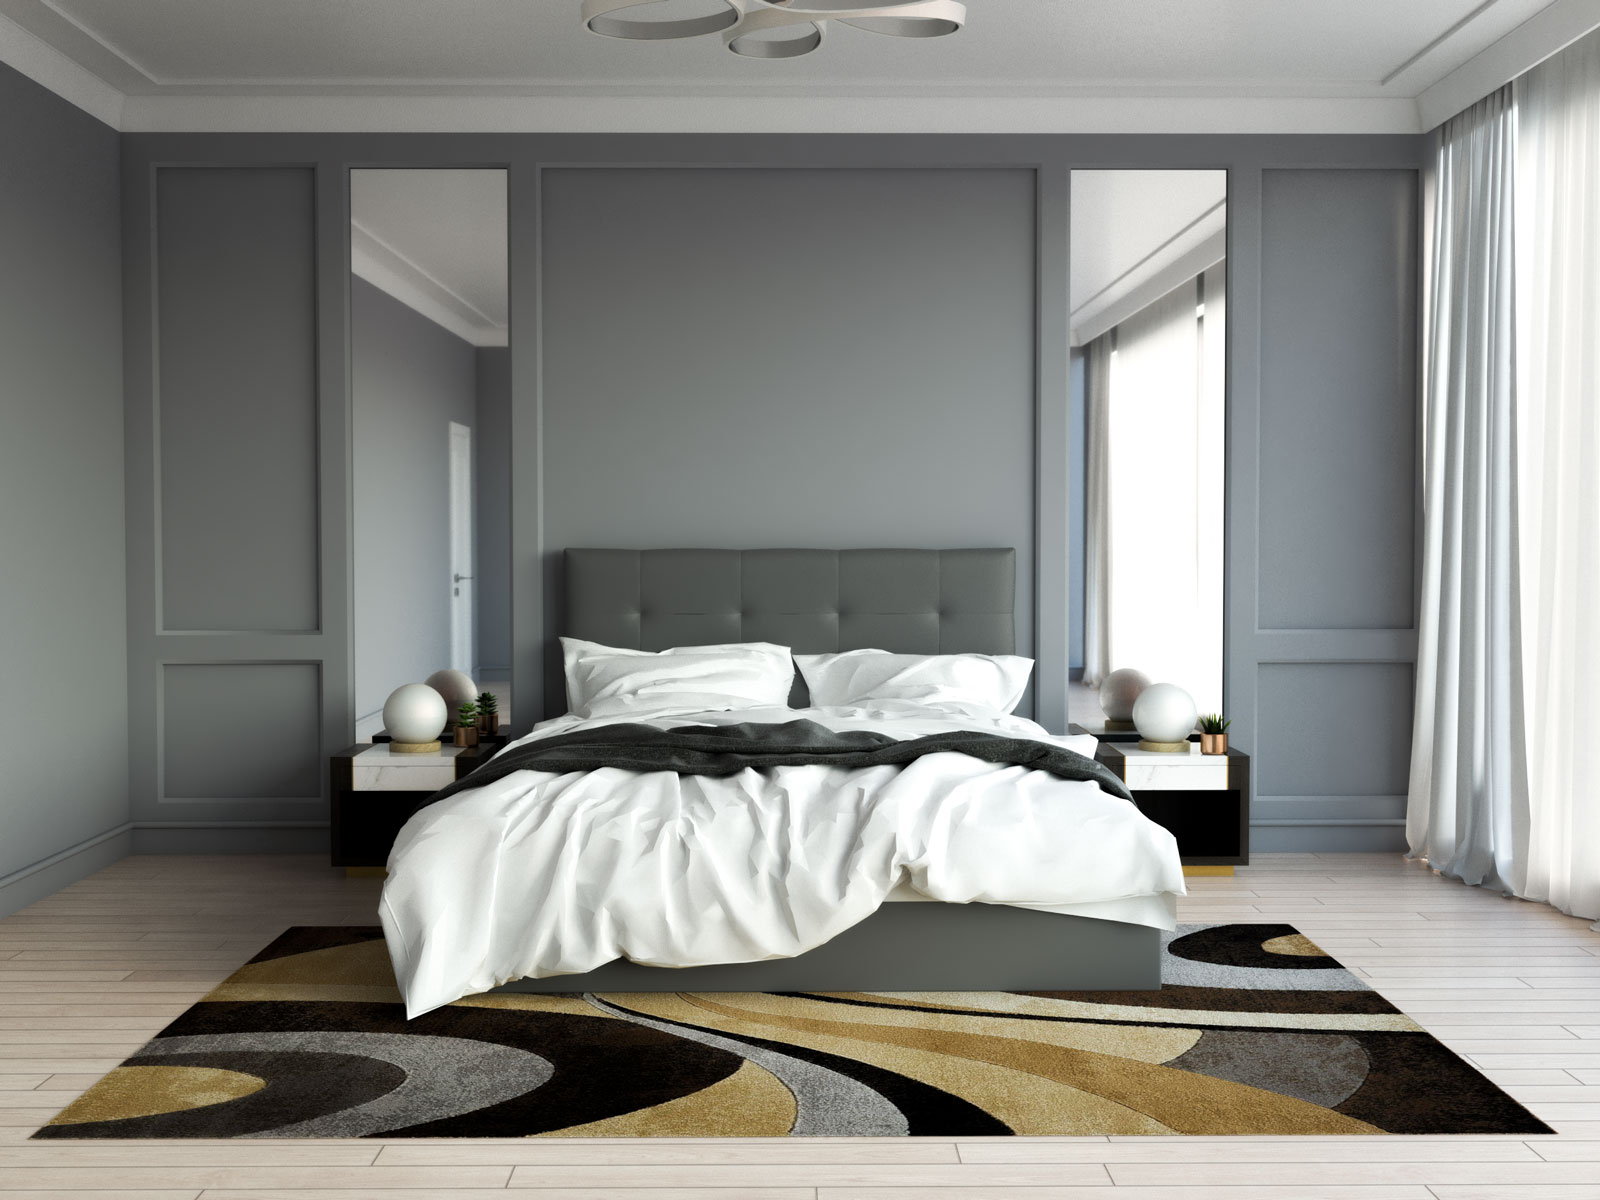 Brown and gray rug in bedroom with gray furniture